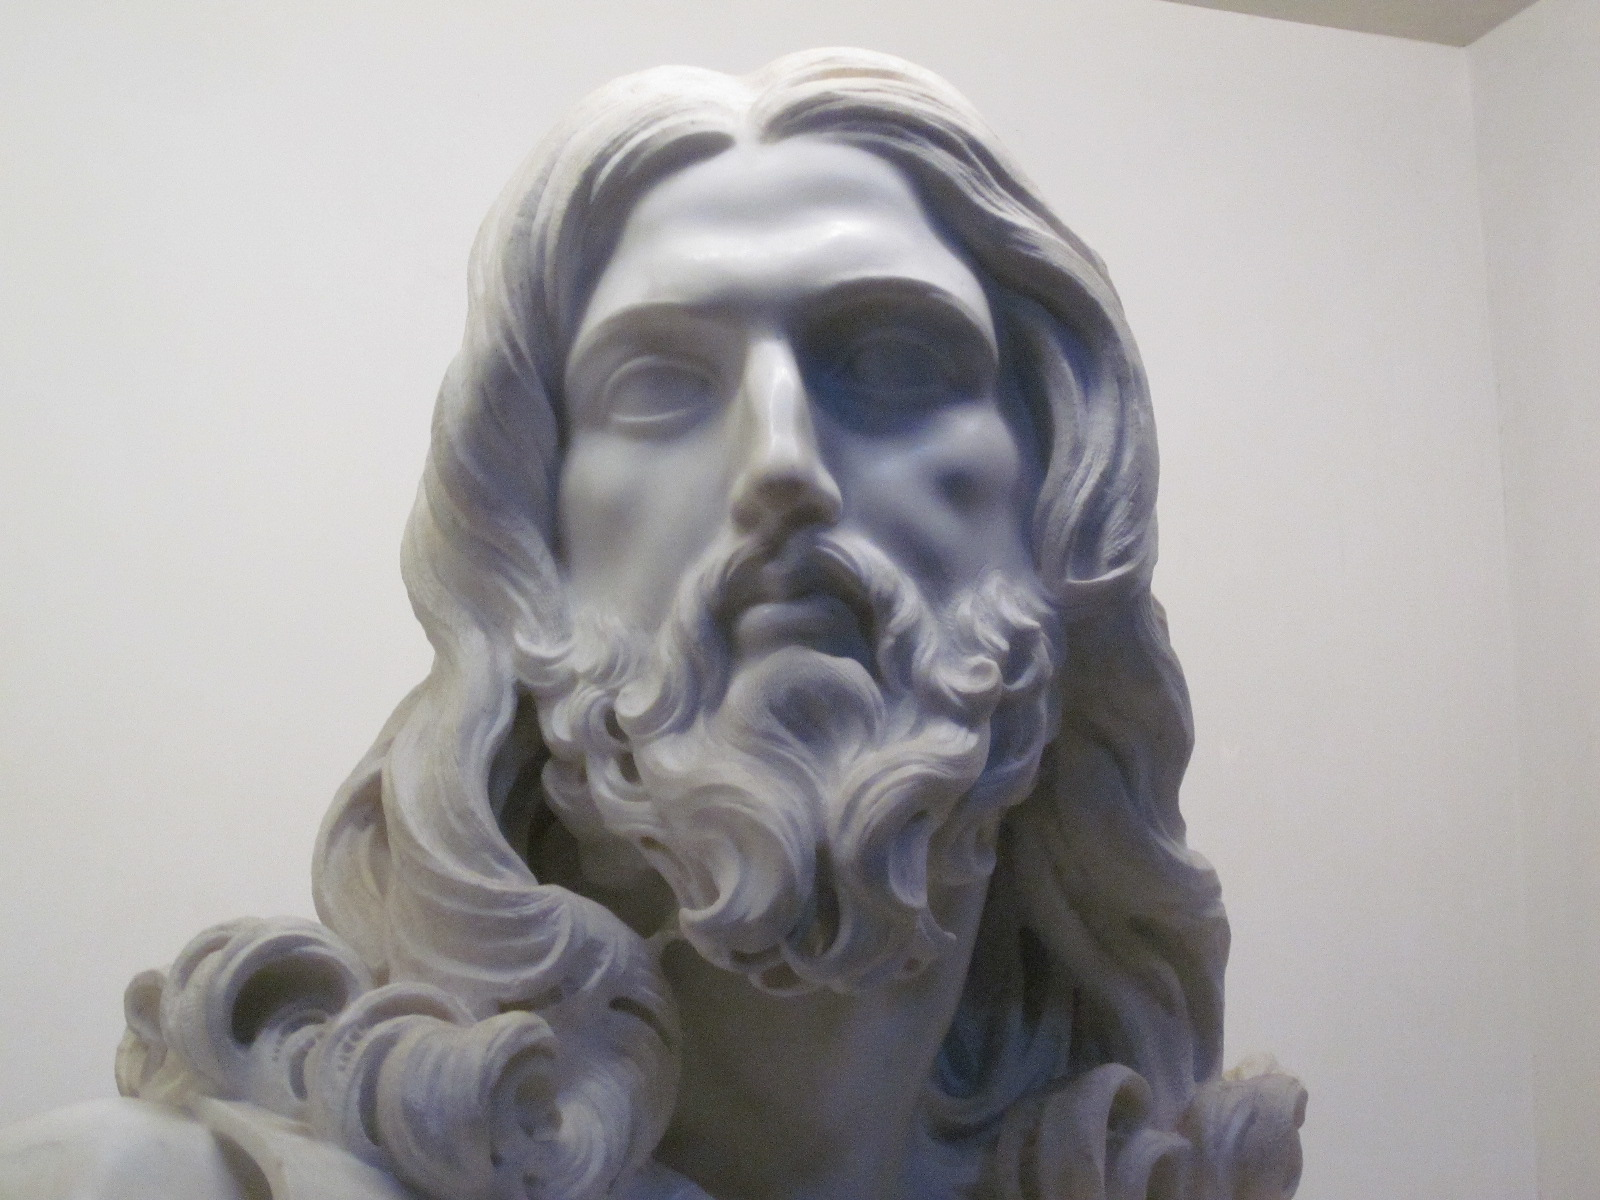 Jesus Sculpture Face Pictures to Pin on Pinterest - PinsDaddy